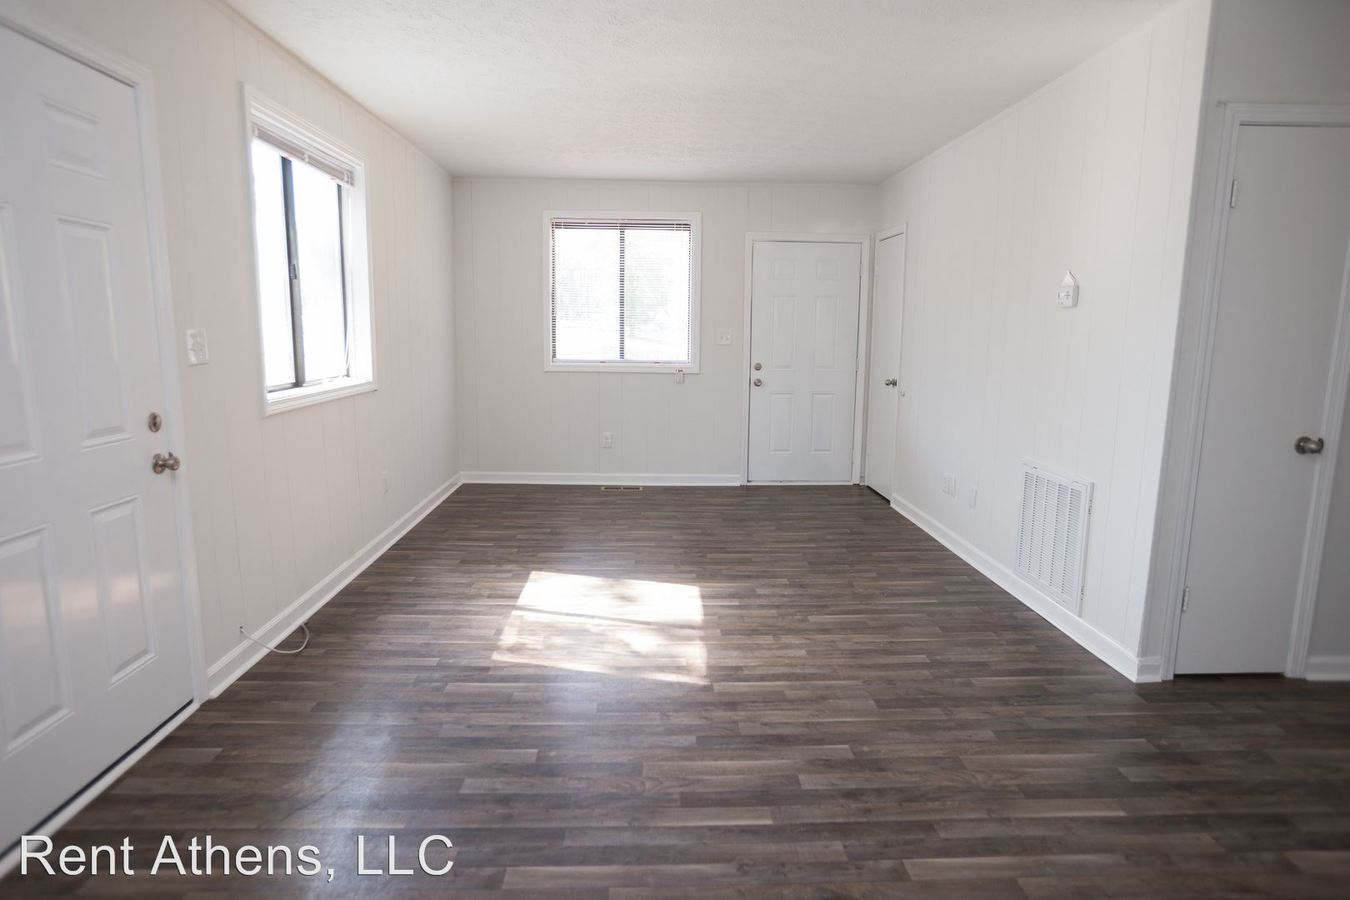 4 Bedrooms 2 Bathrooms Apartment for rent at 210 Spring Court in Athens, GA